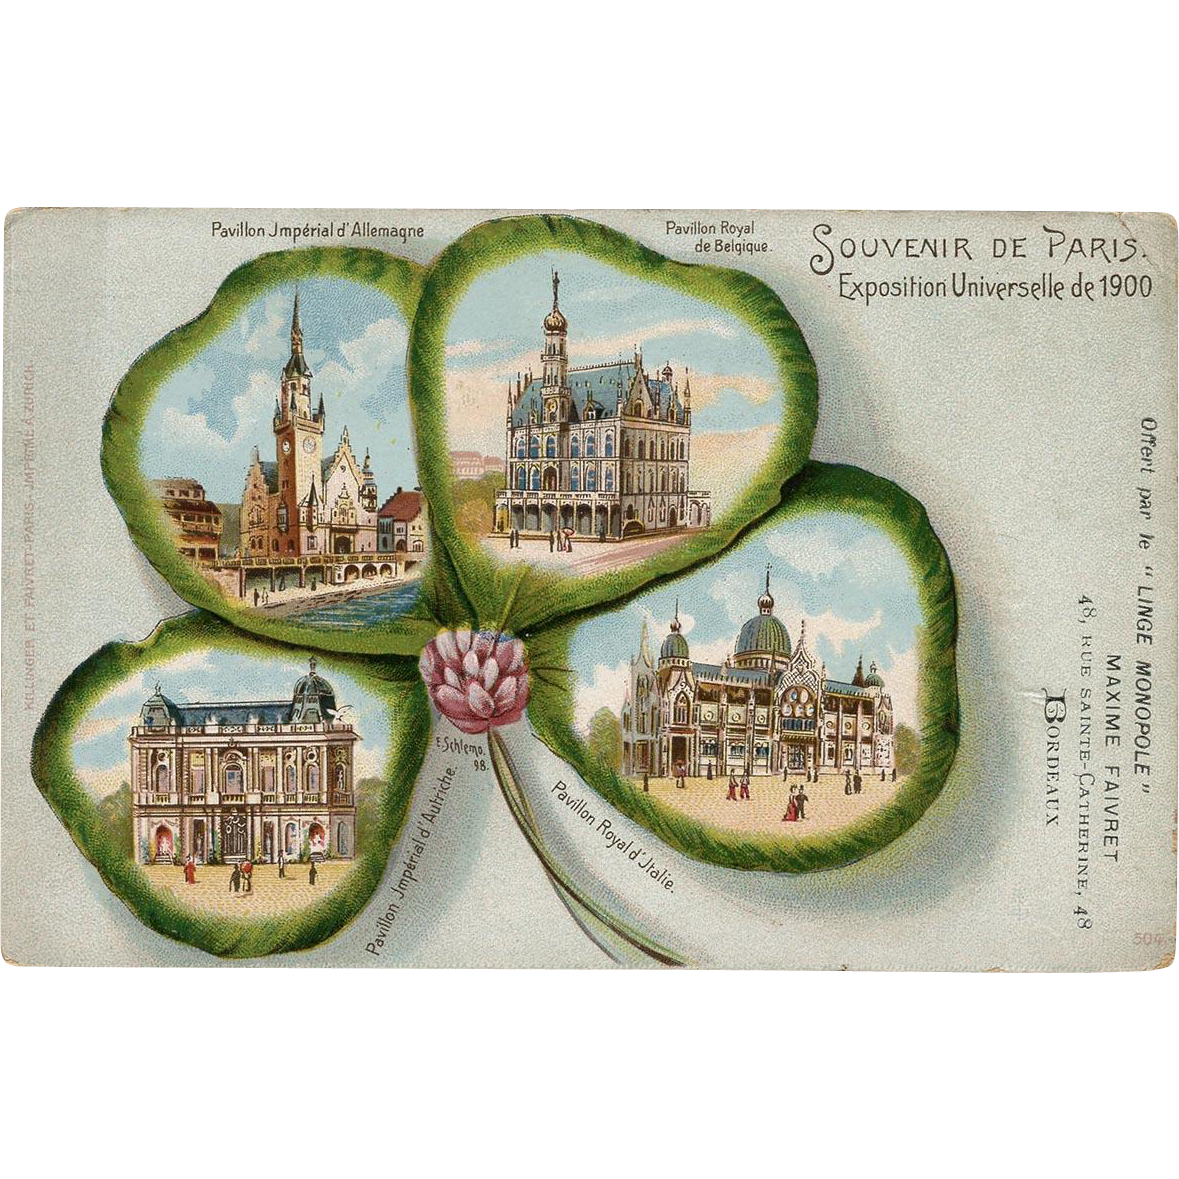 Four Leaf Clover Design of Paris 1900 Expo Pavillions Unused French Postcard